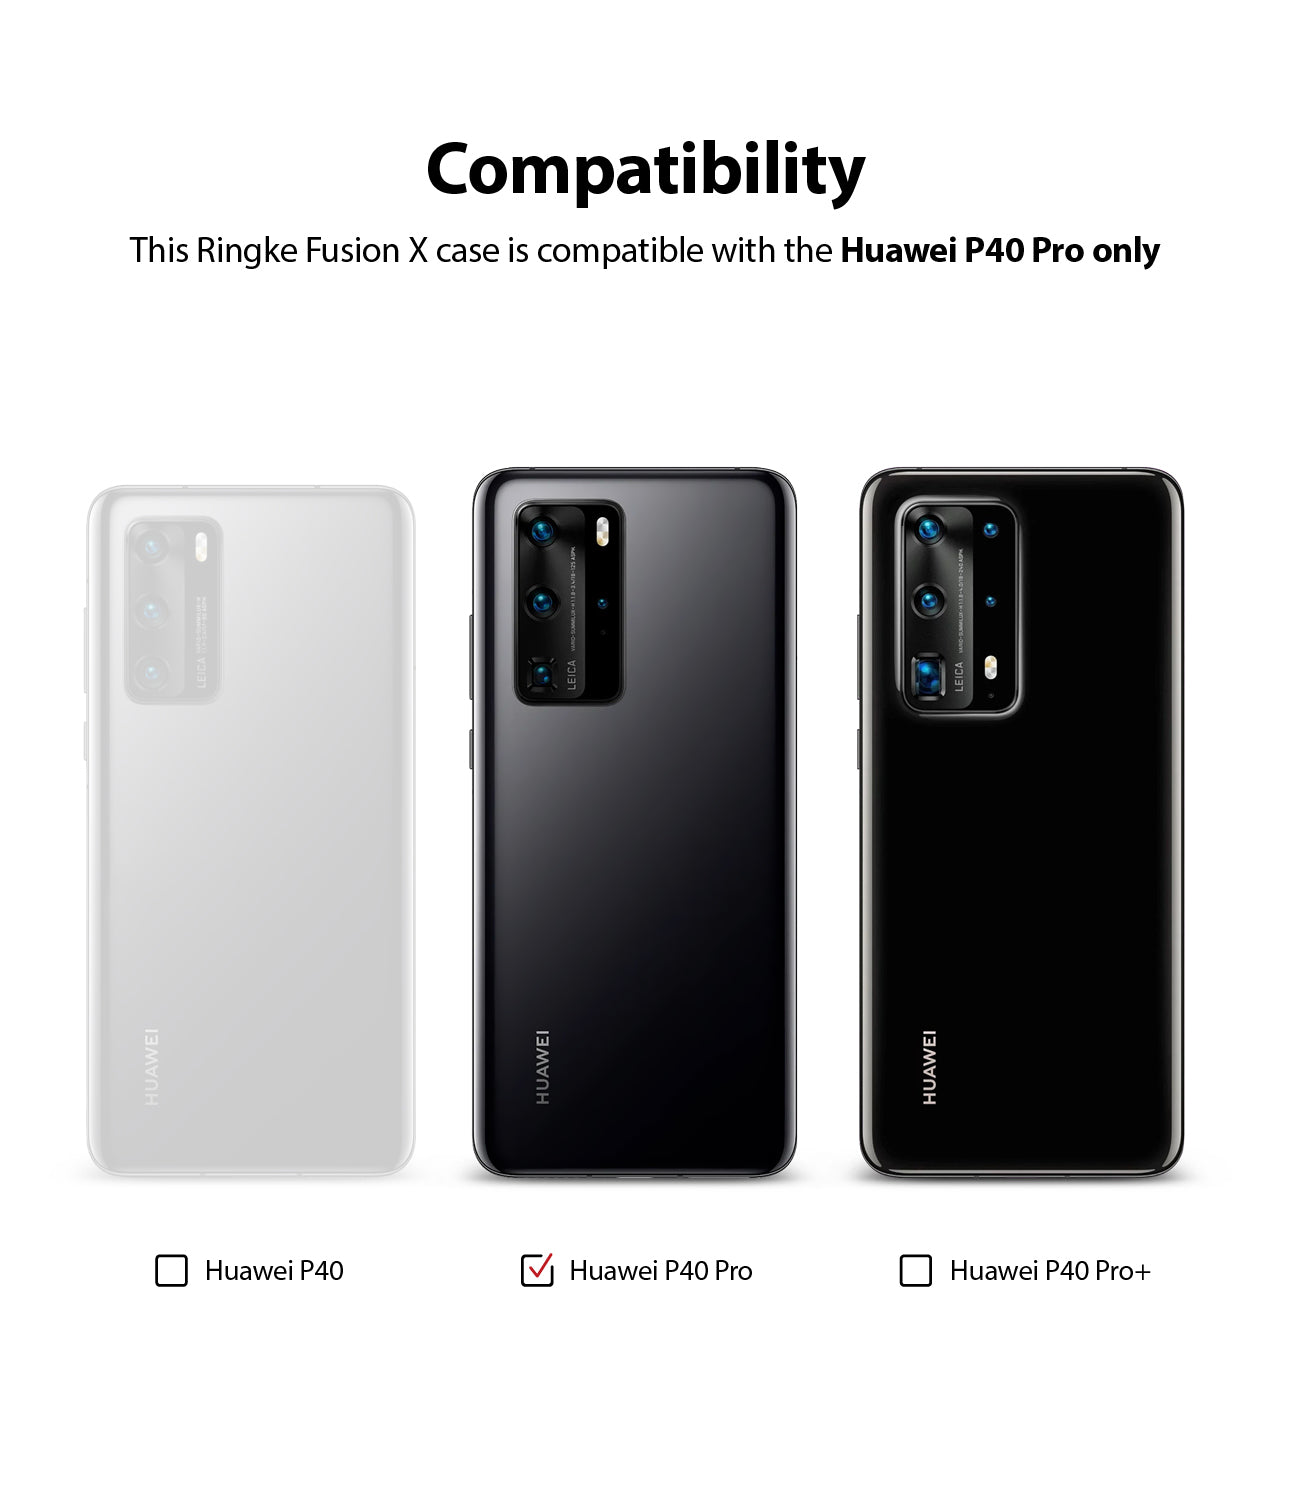 compatible only with huawei p40 pro